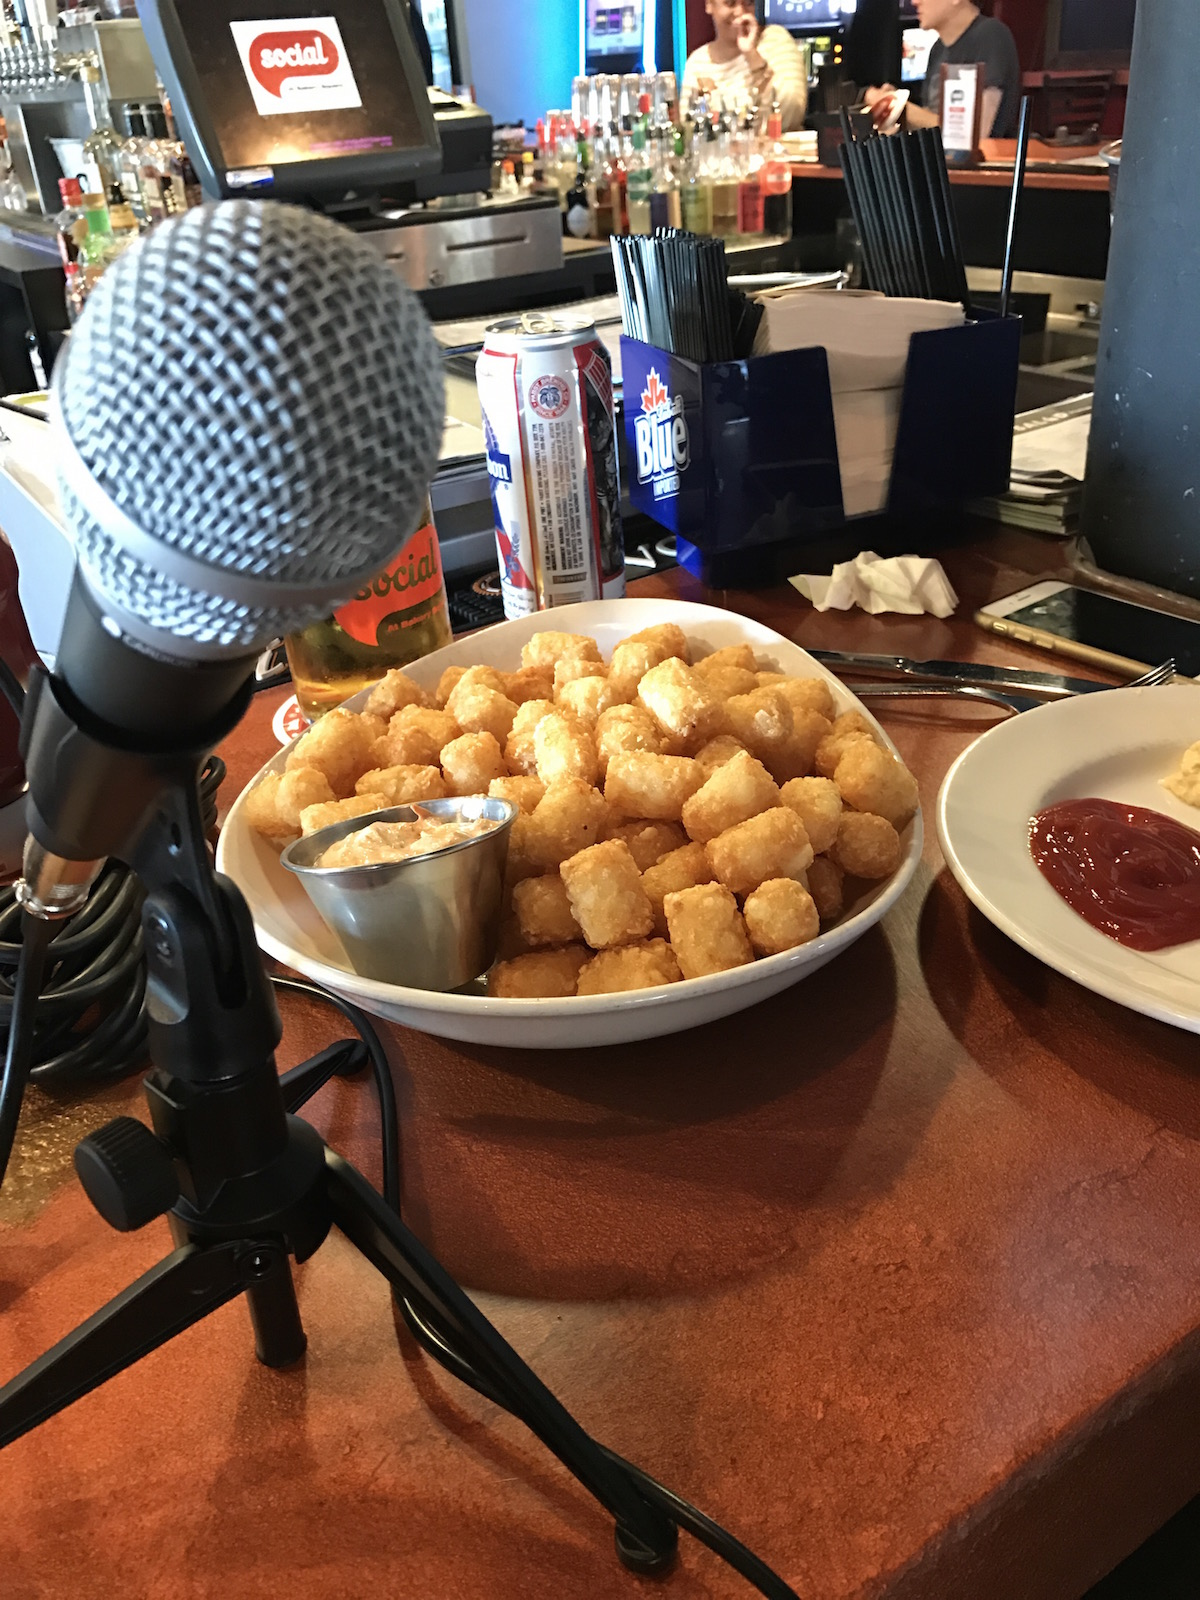 The first episode of Fry Days in PGH was recorded at Social in Bakery Square with a plate of tots and buffalo chicken dip!